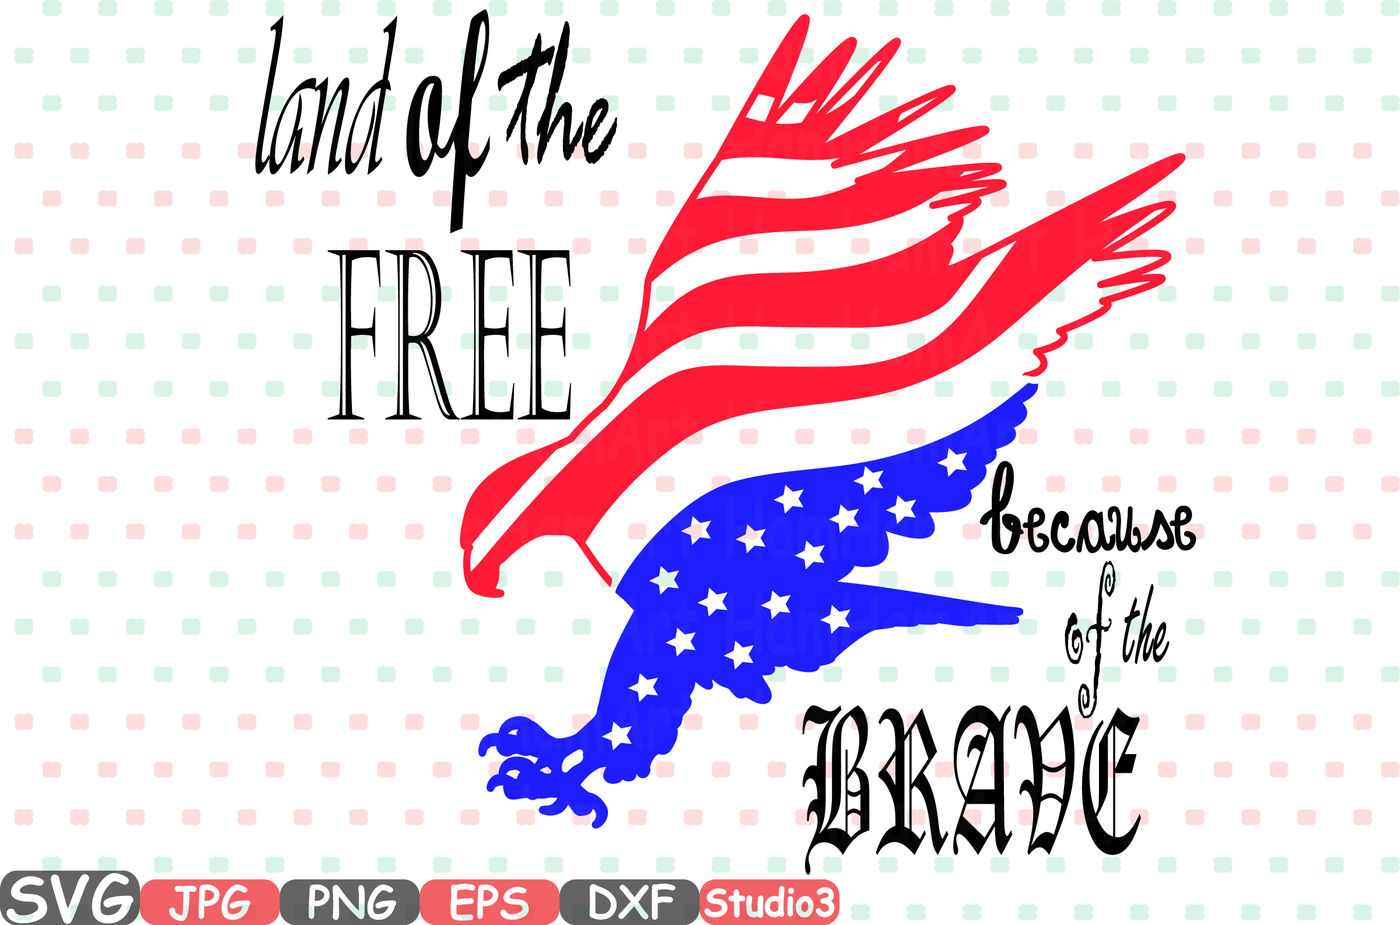 Land Of The Free Because Of The Brave Quote Silhouette Svg